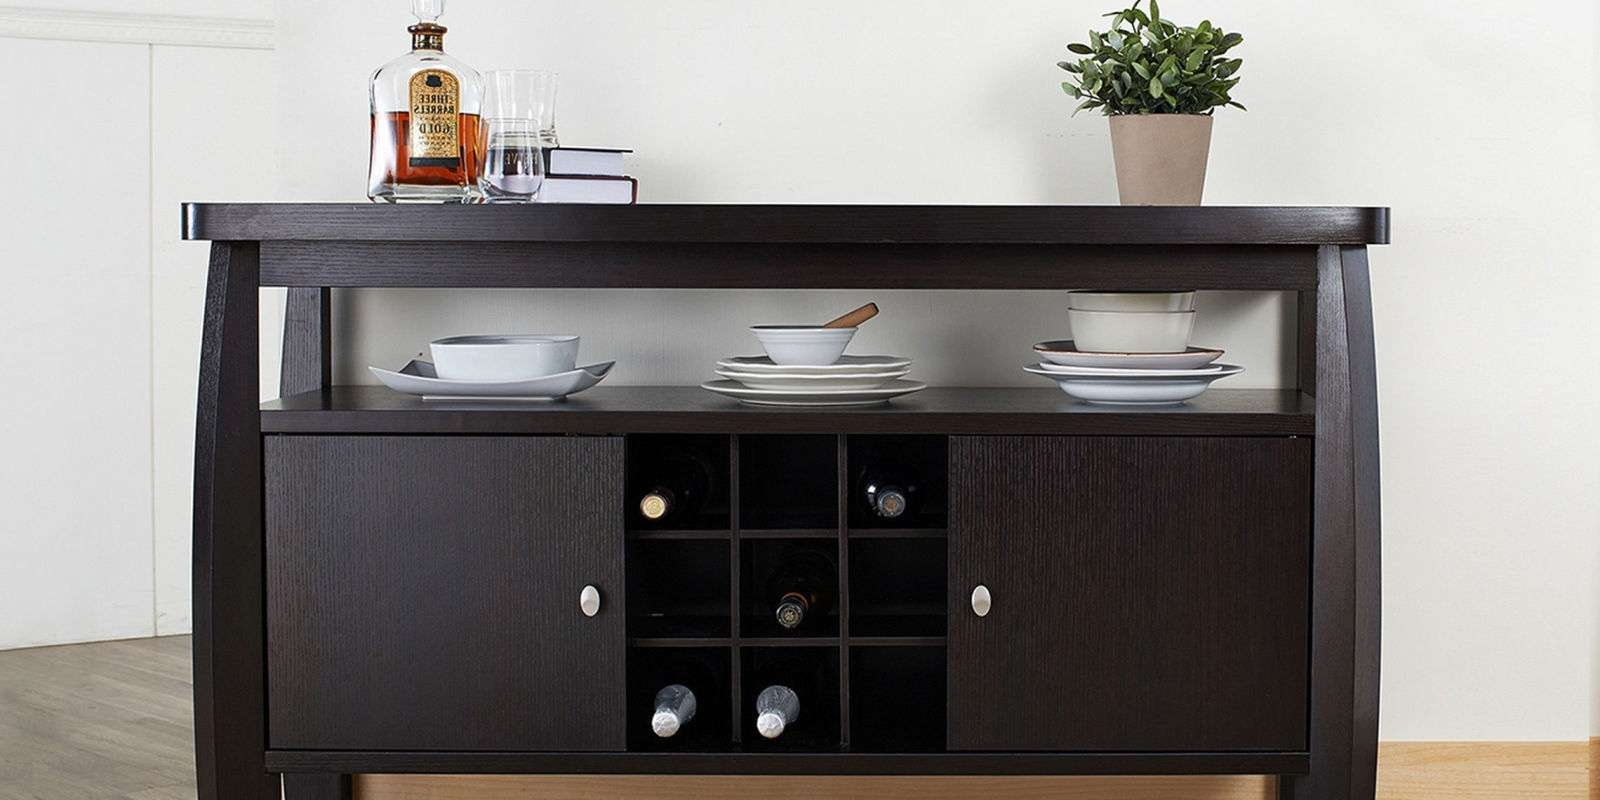 11 Best Sideboards And Buffets In 2018 – Reviews Of Sideboards In Buffet Sideboards (View 1 of 20)